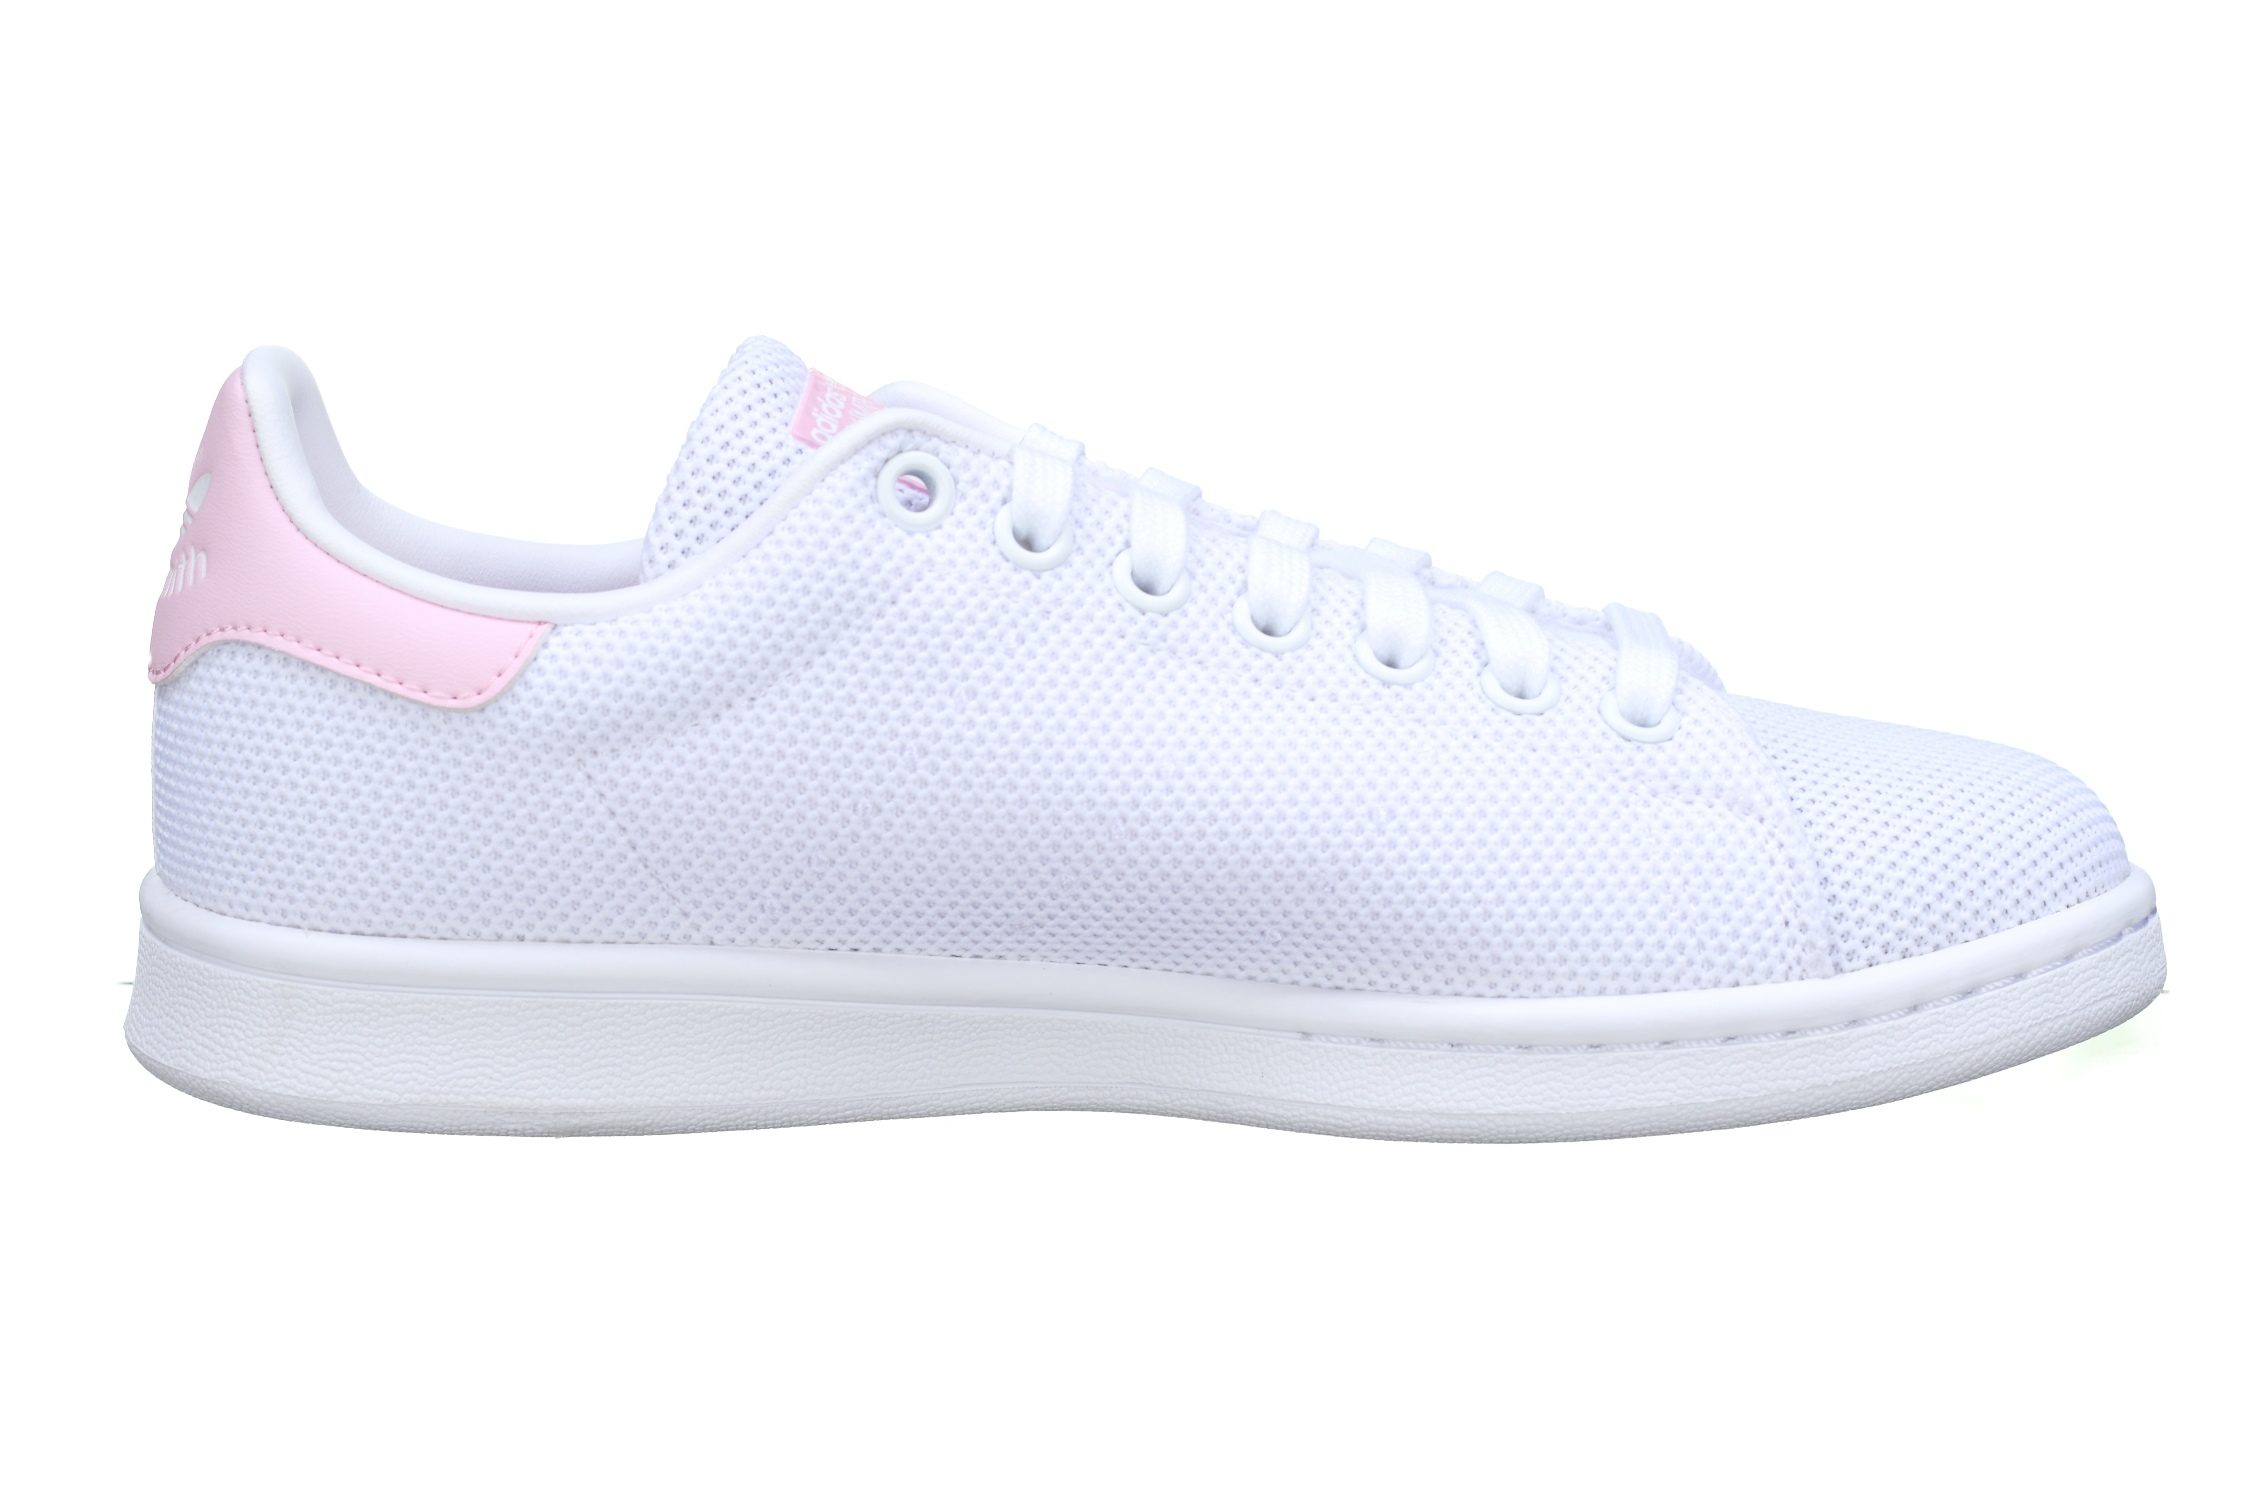 http://www.leadermode.com/148796/adidas-stan-smith-w-cq2823-blanc-rose.jpg